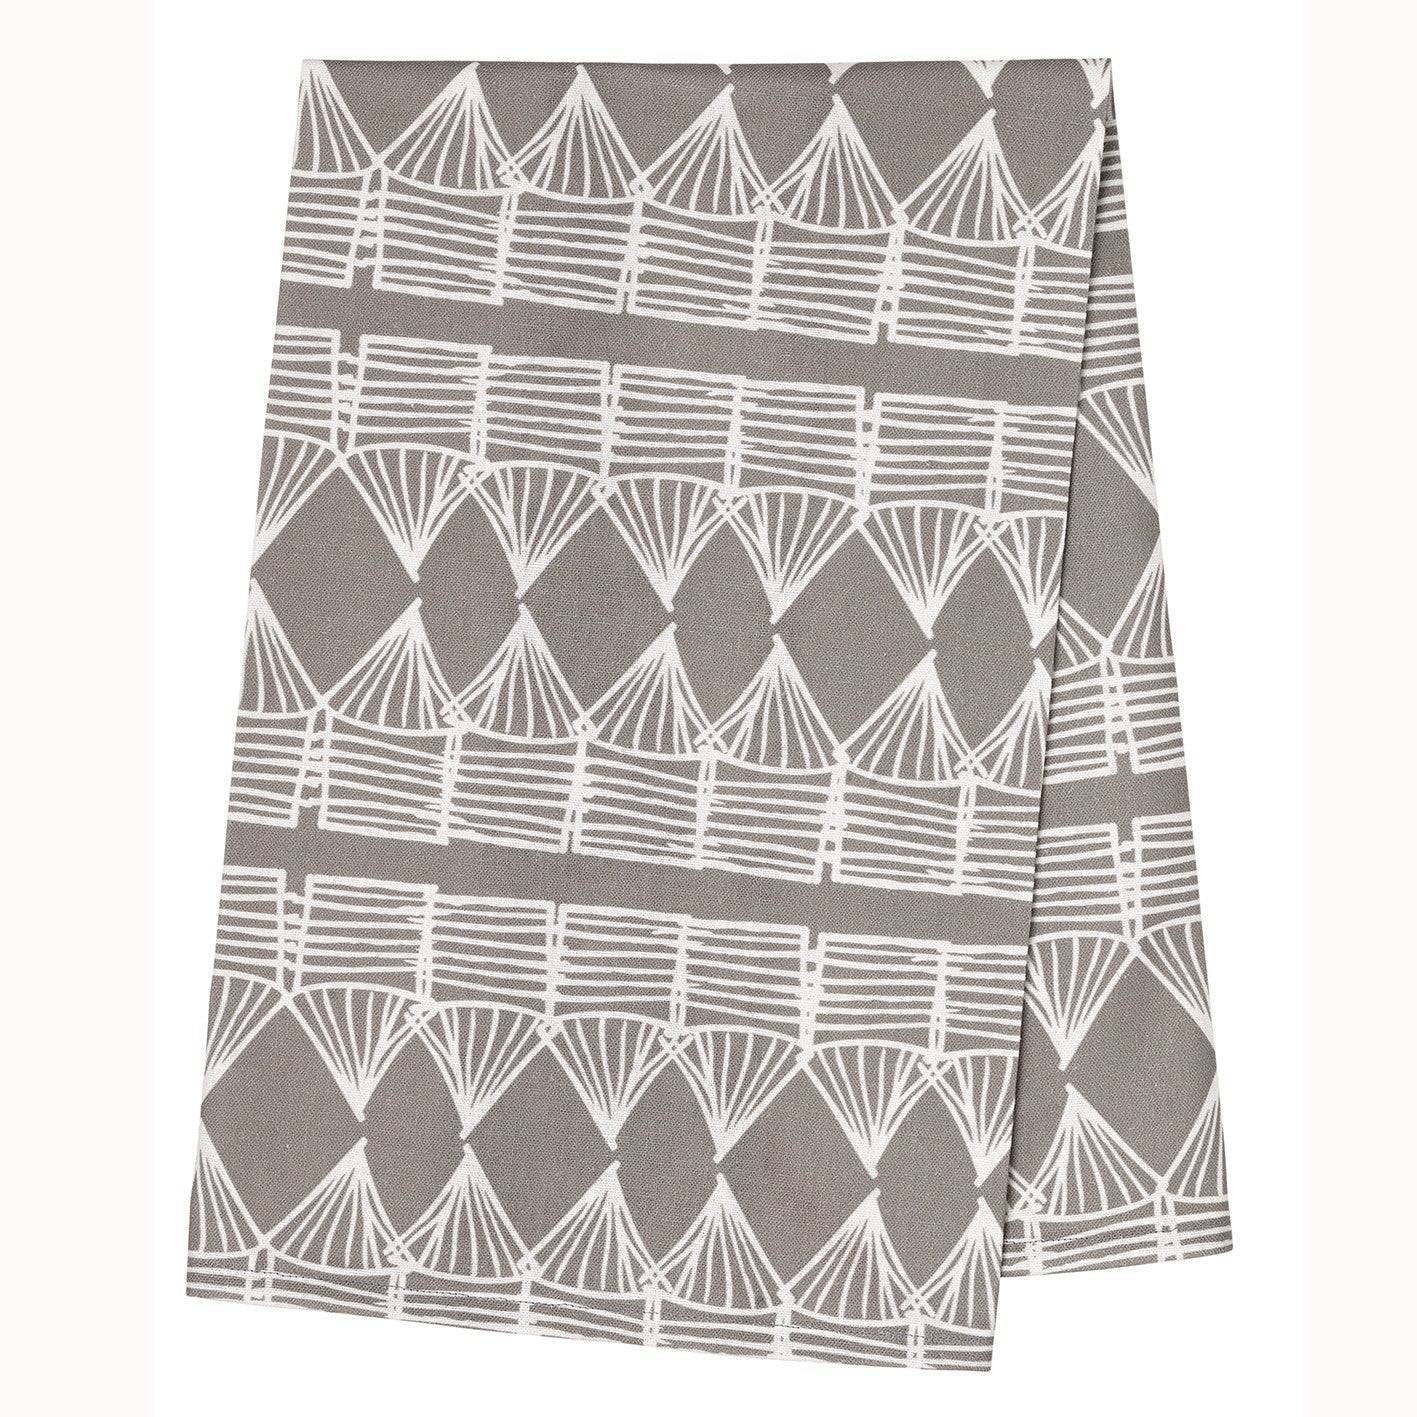 Huts Tea Towel - Dove Grey